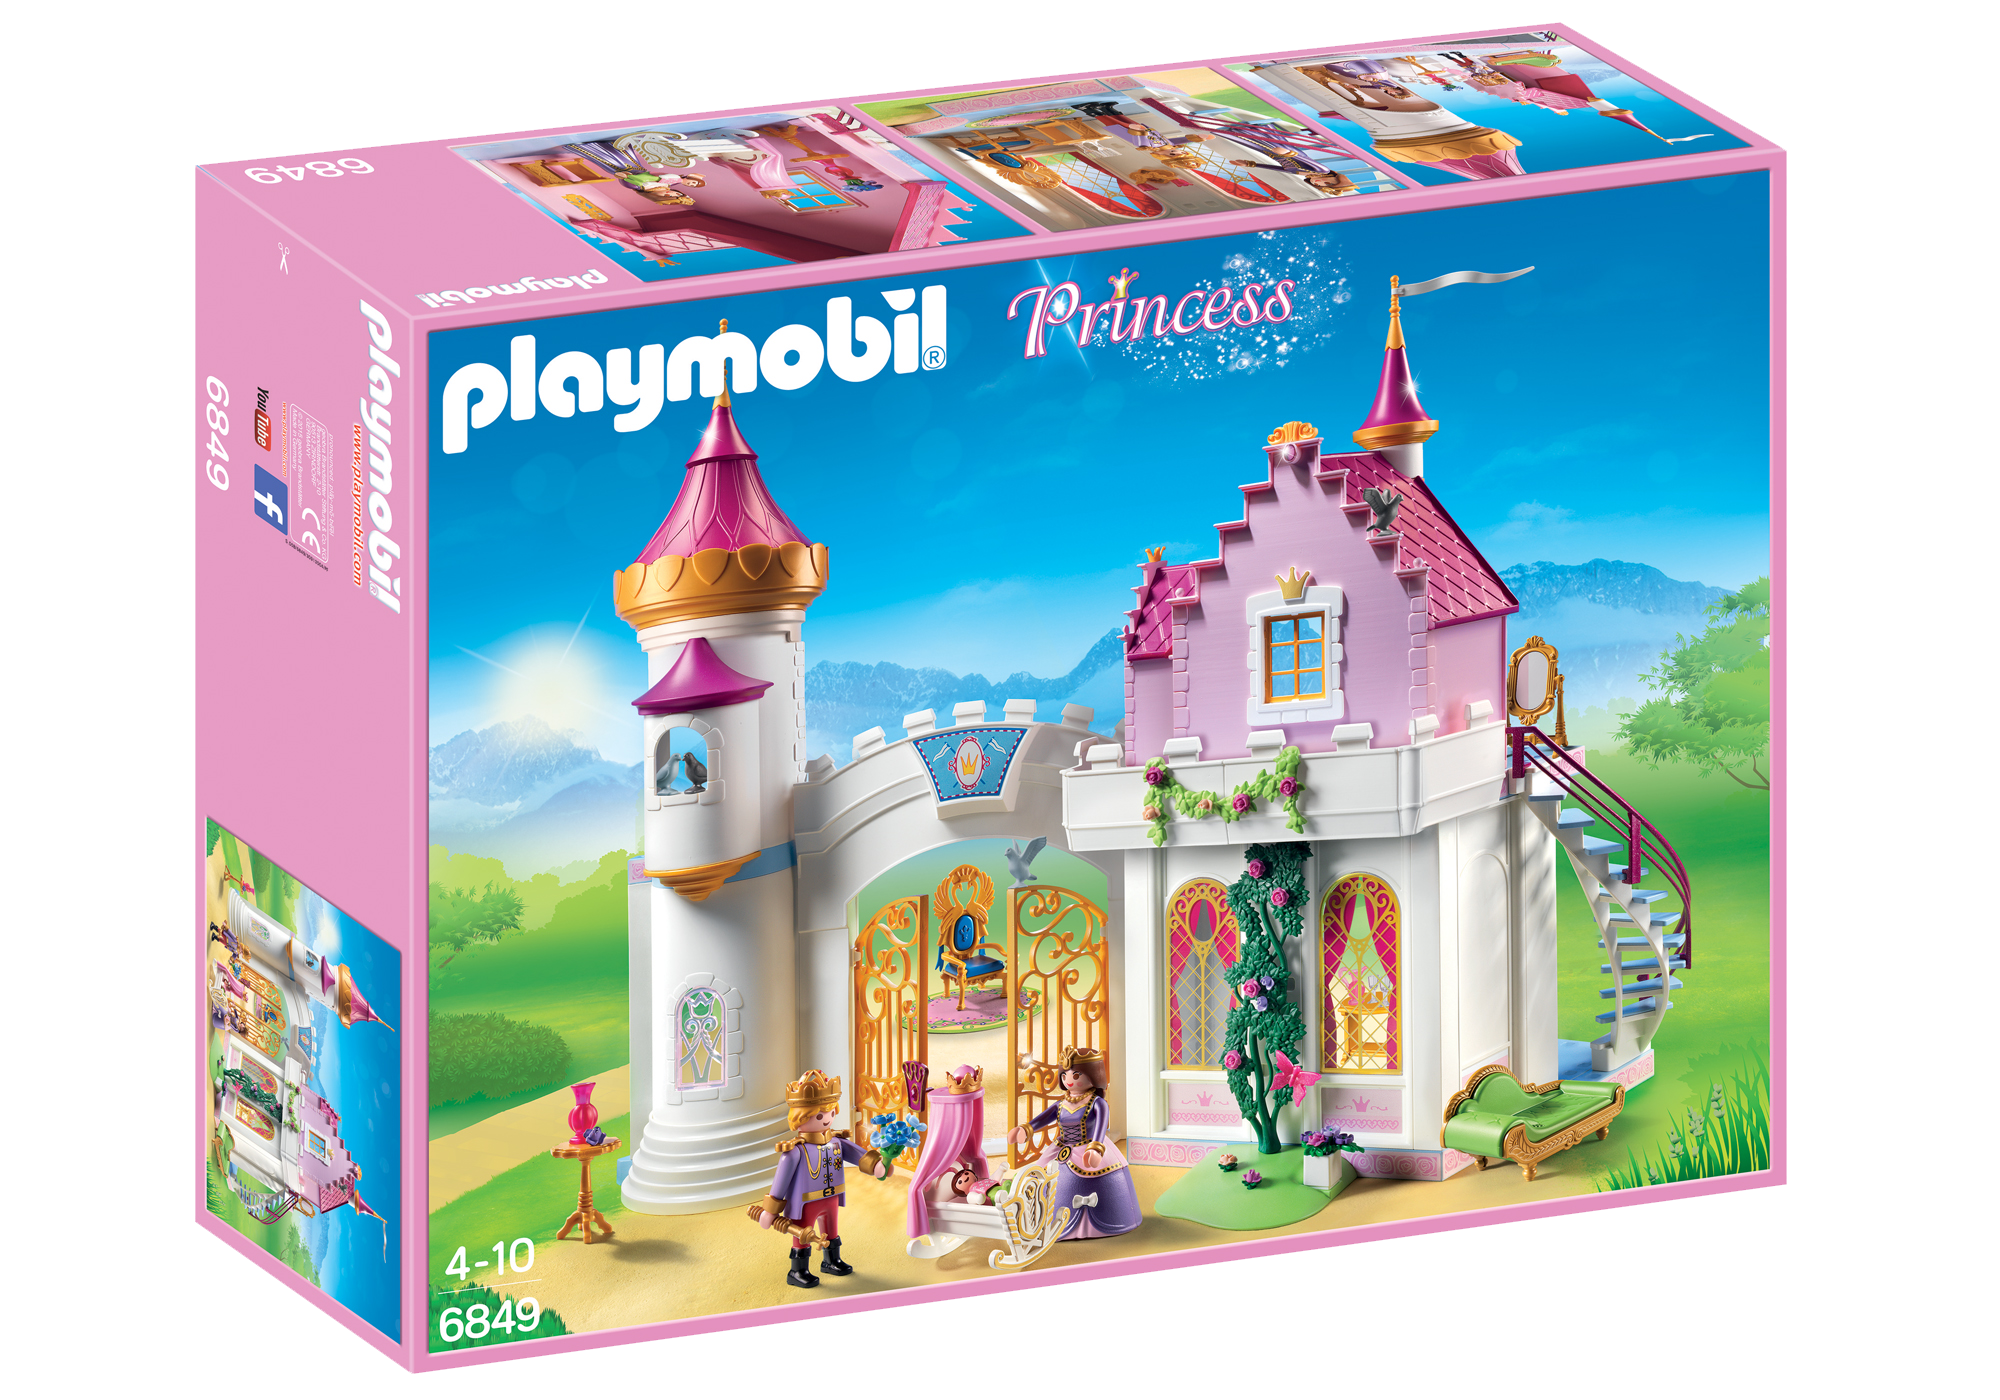 http://media.playmobil.com/i/playmobil/6849_product_box_front